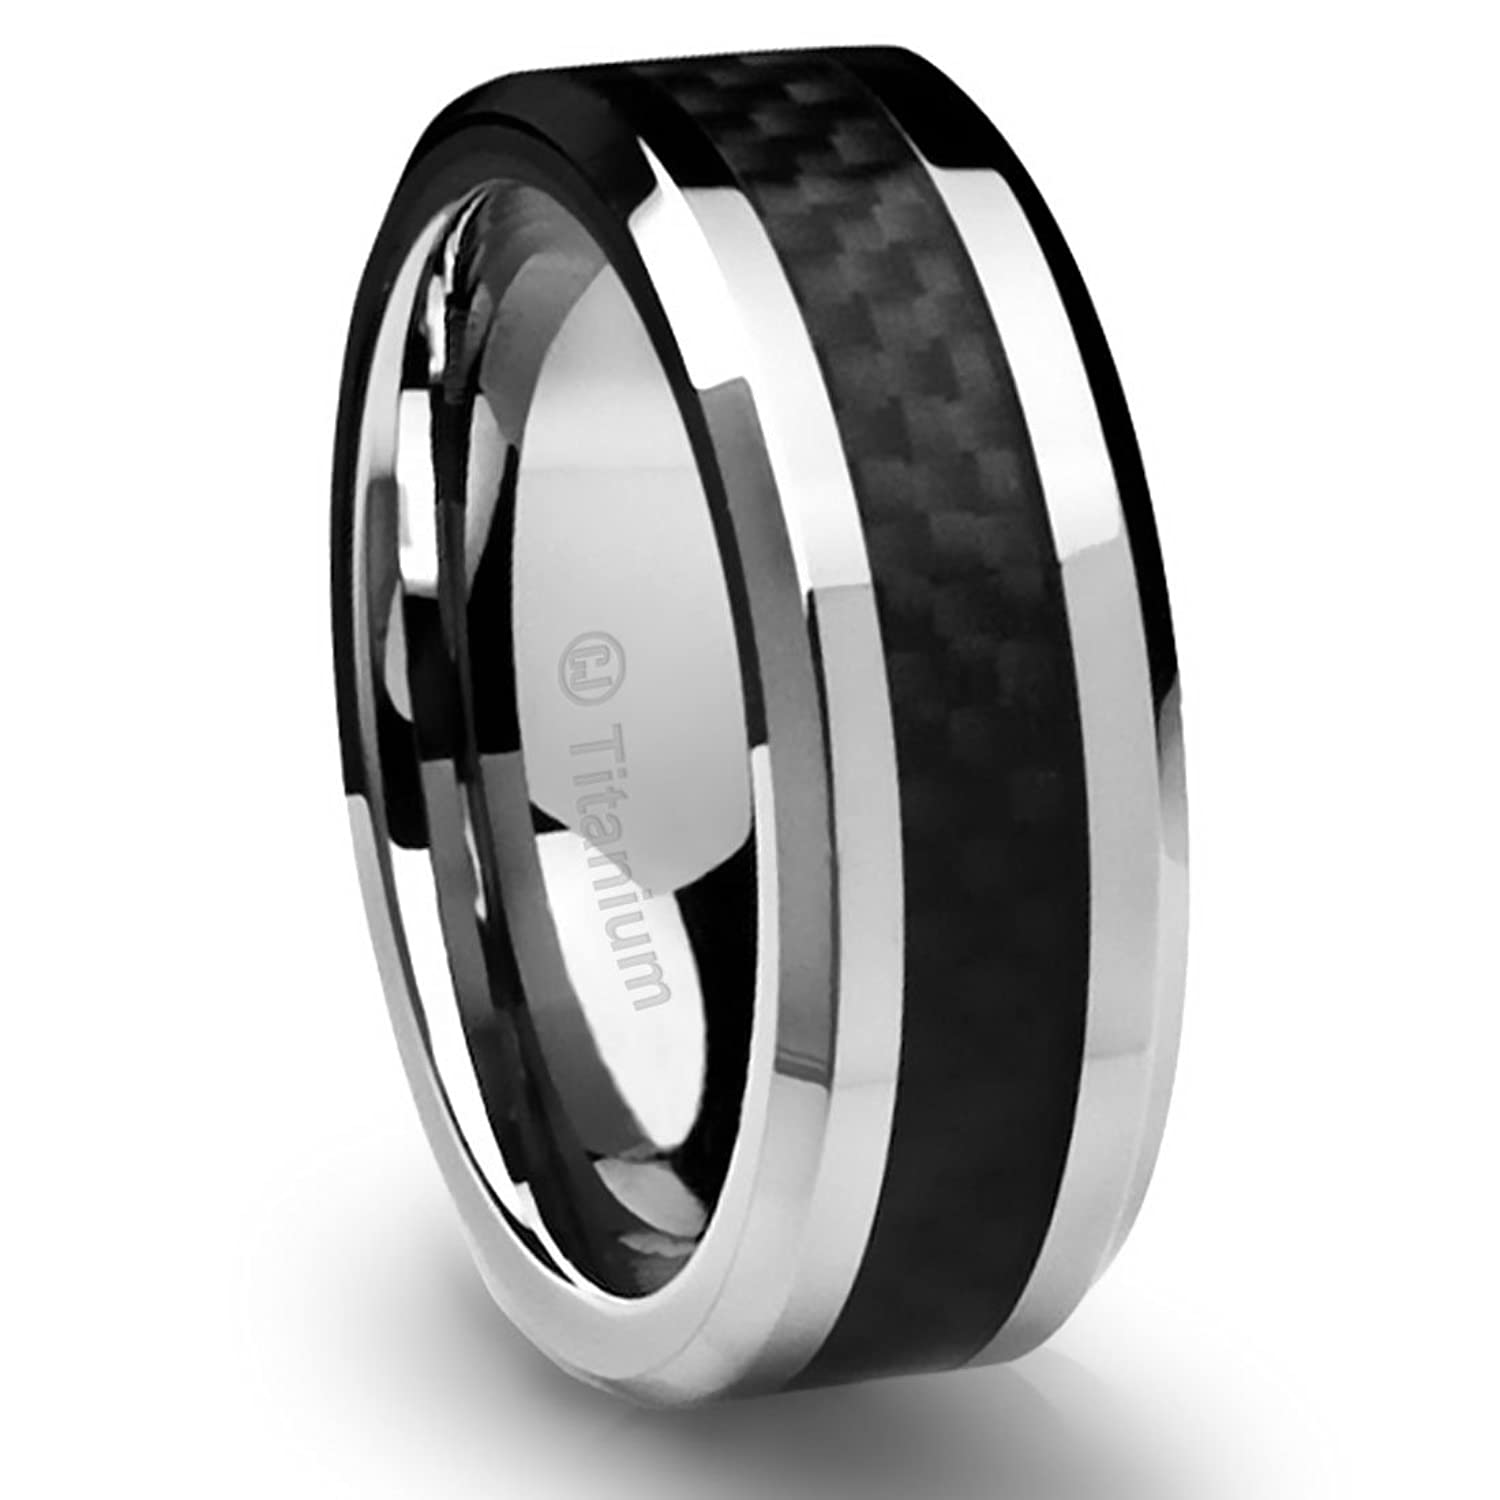 8mm mens titanium ring wedding band black carbon fiber inlay and beveled edges amazoncom - Titanium Wedding Rings For Men